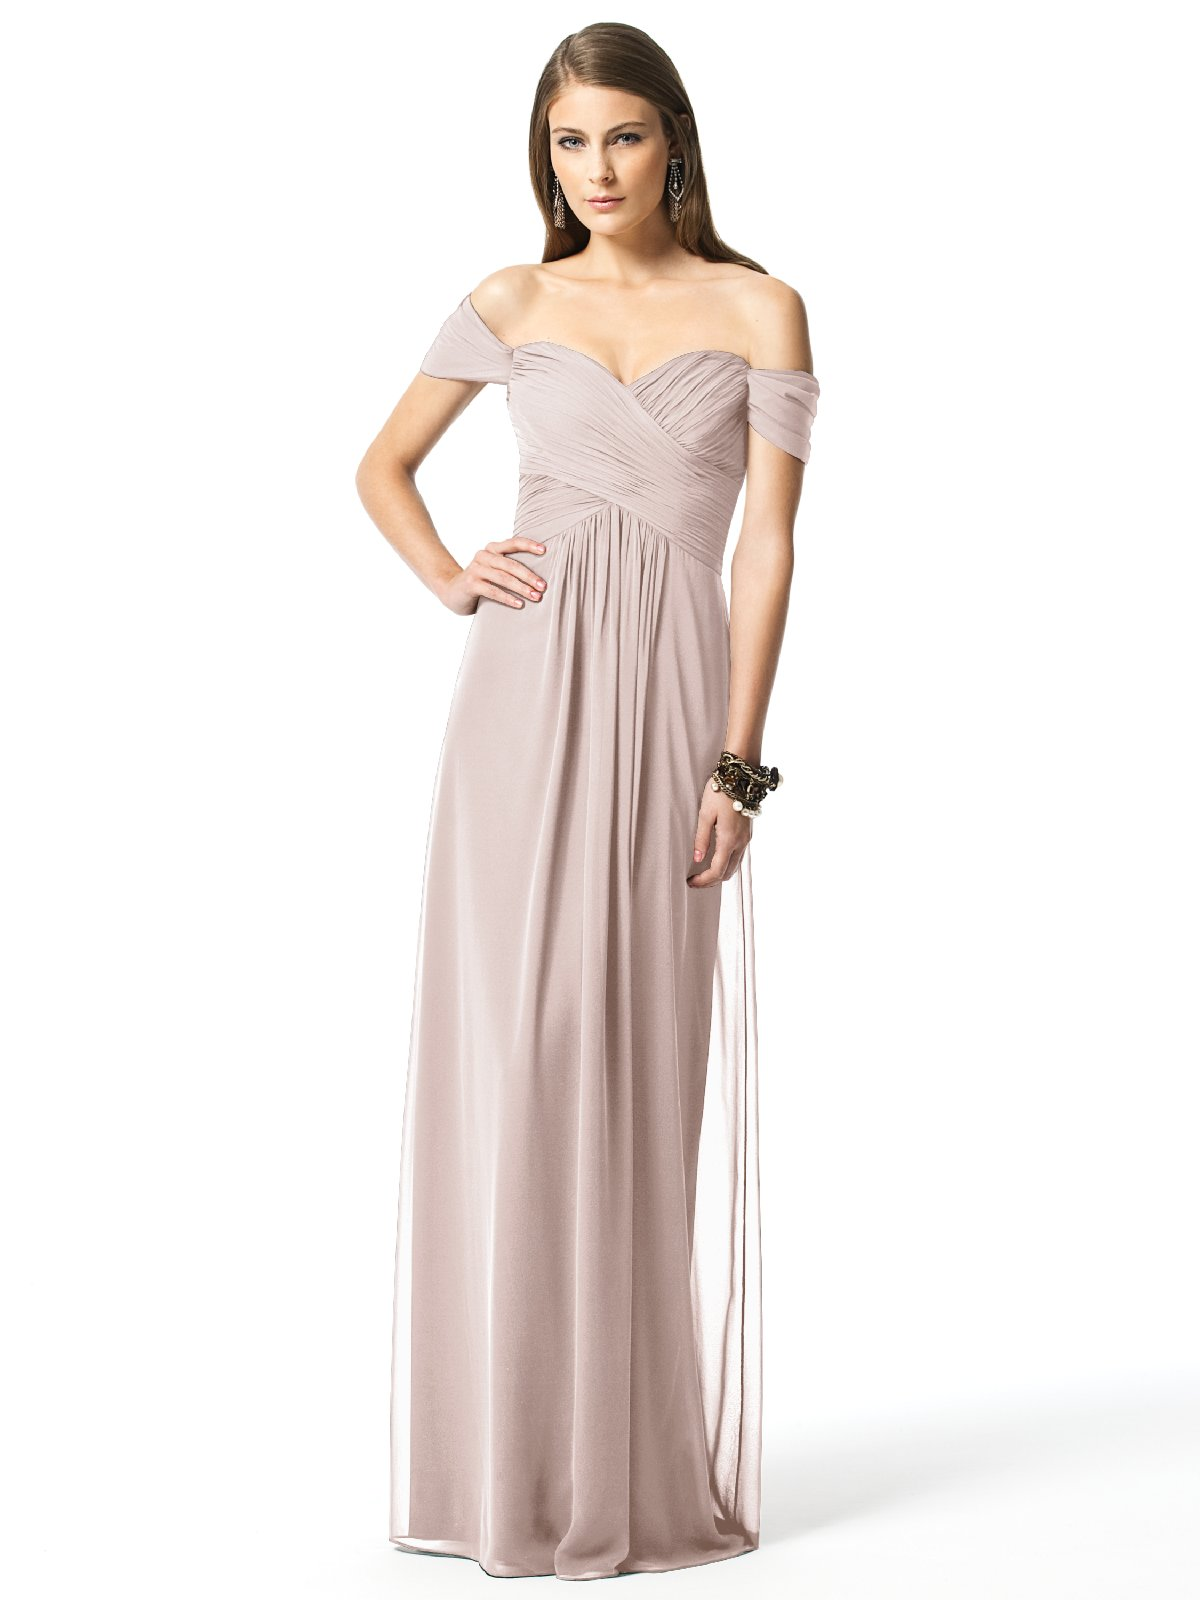 Dessy bridesmaid dressesdessy dresses 2844d2844the dessy group dessy bridesmaid dresses dessy 2844 loading zoom ombrellifo Gallery